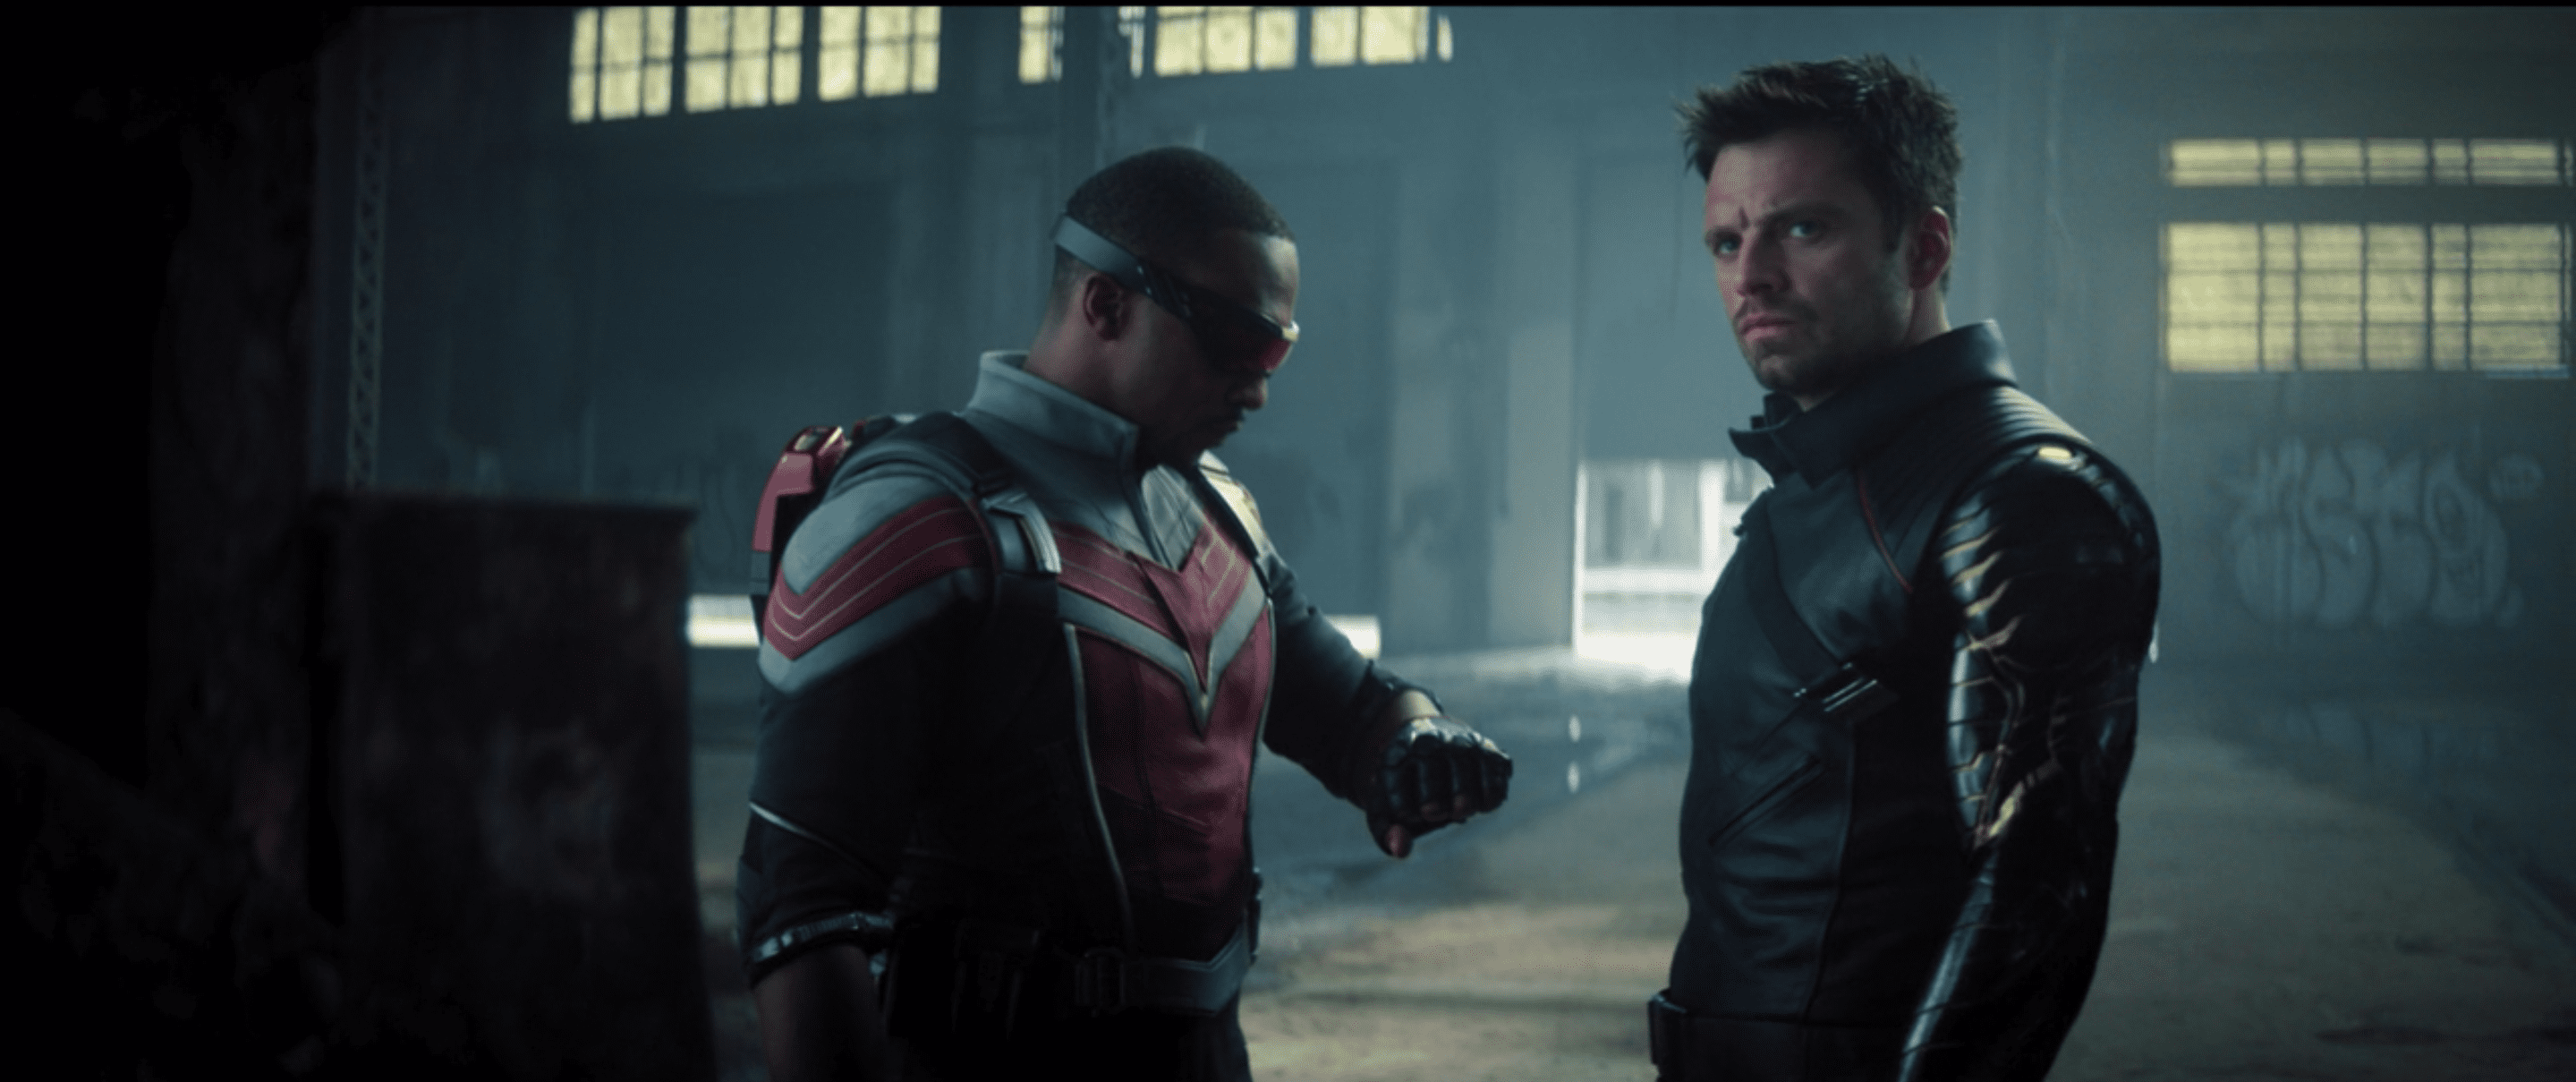 Bucky and Wilson - The Falcon and The Winter Soldier.